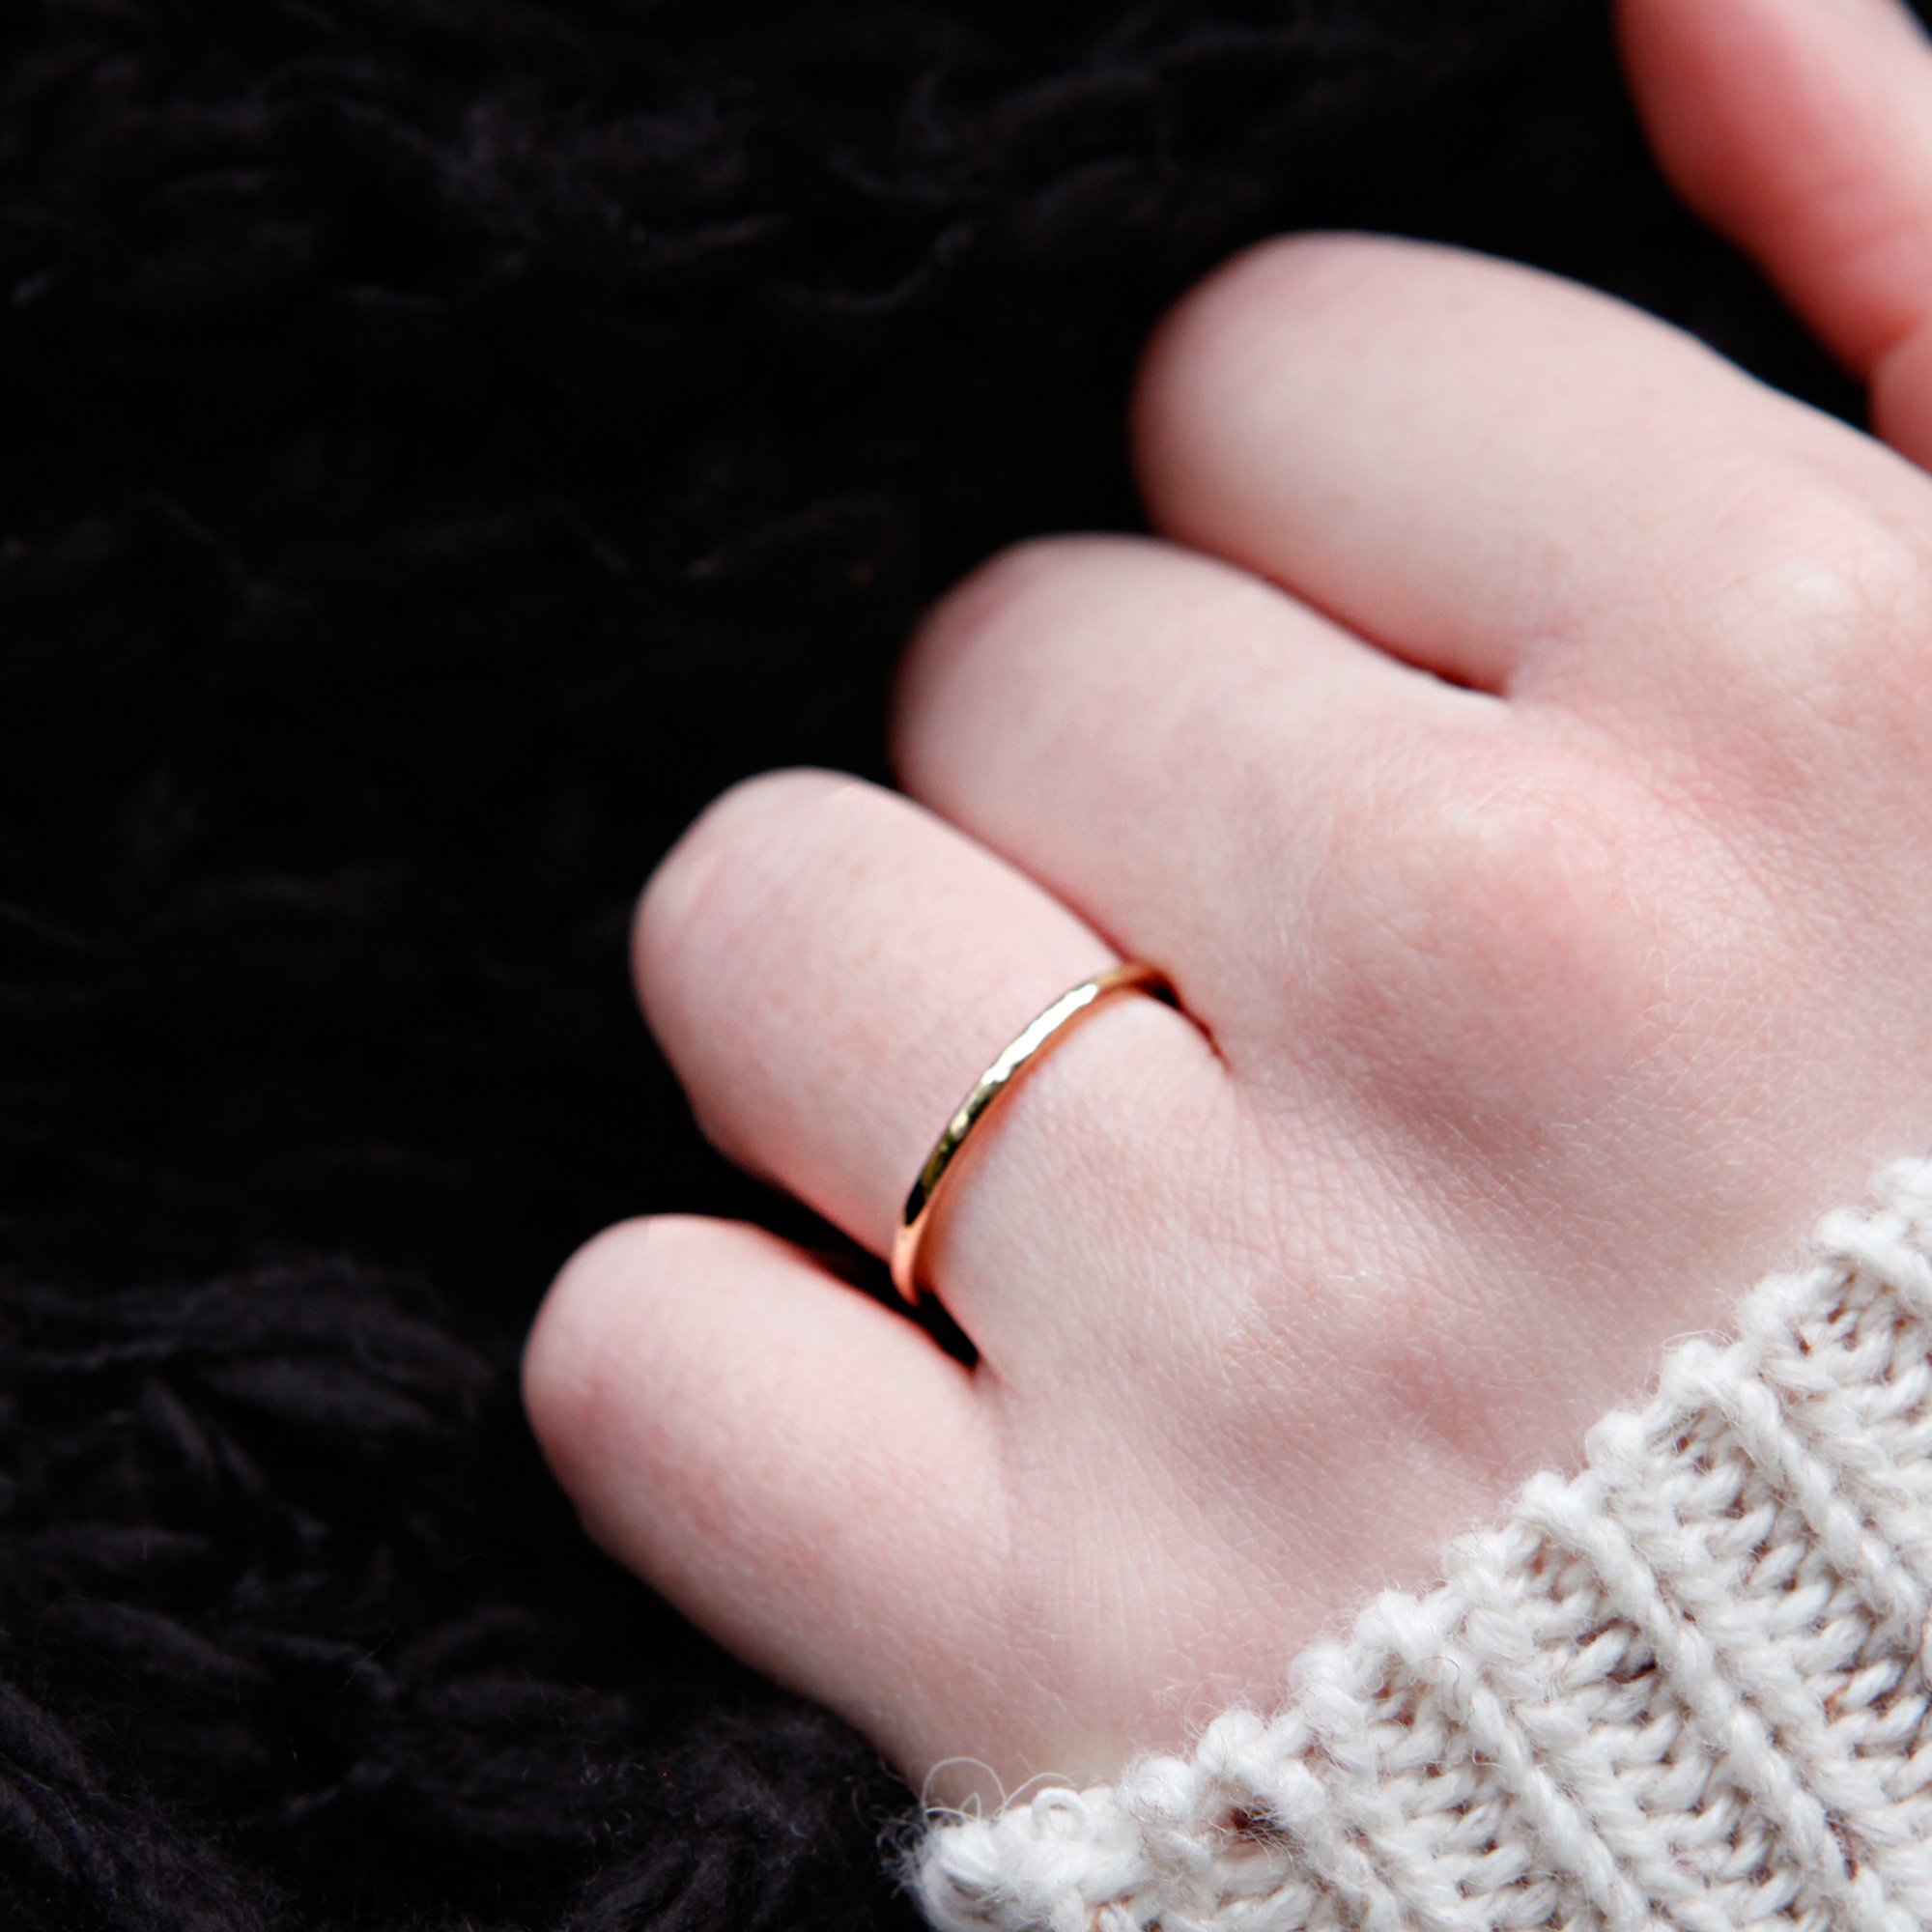 wedding ring, nikki stark wedding ring